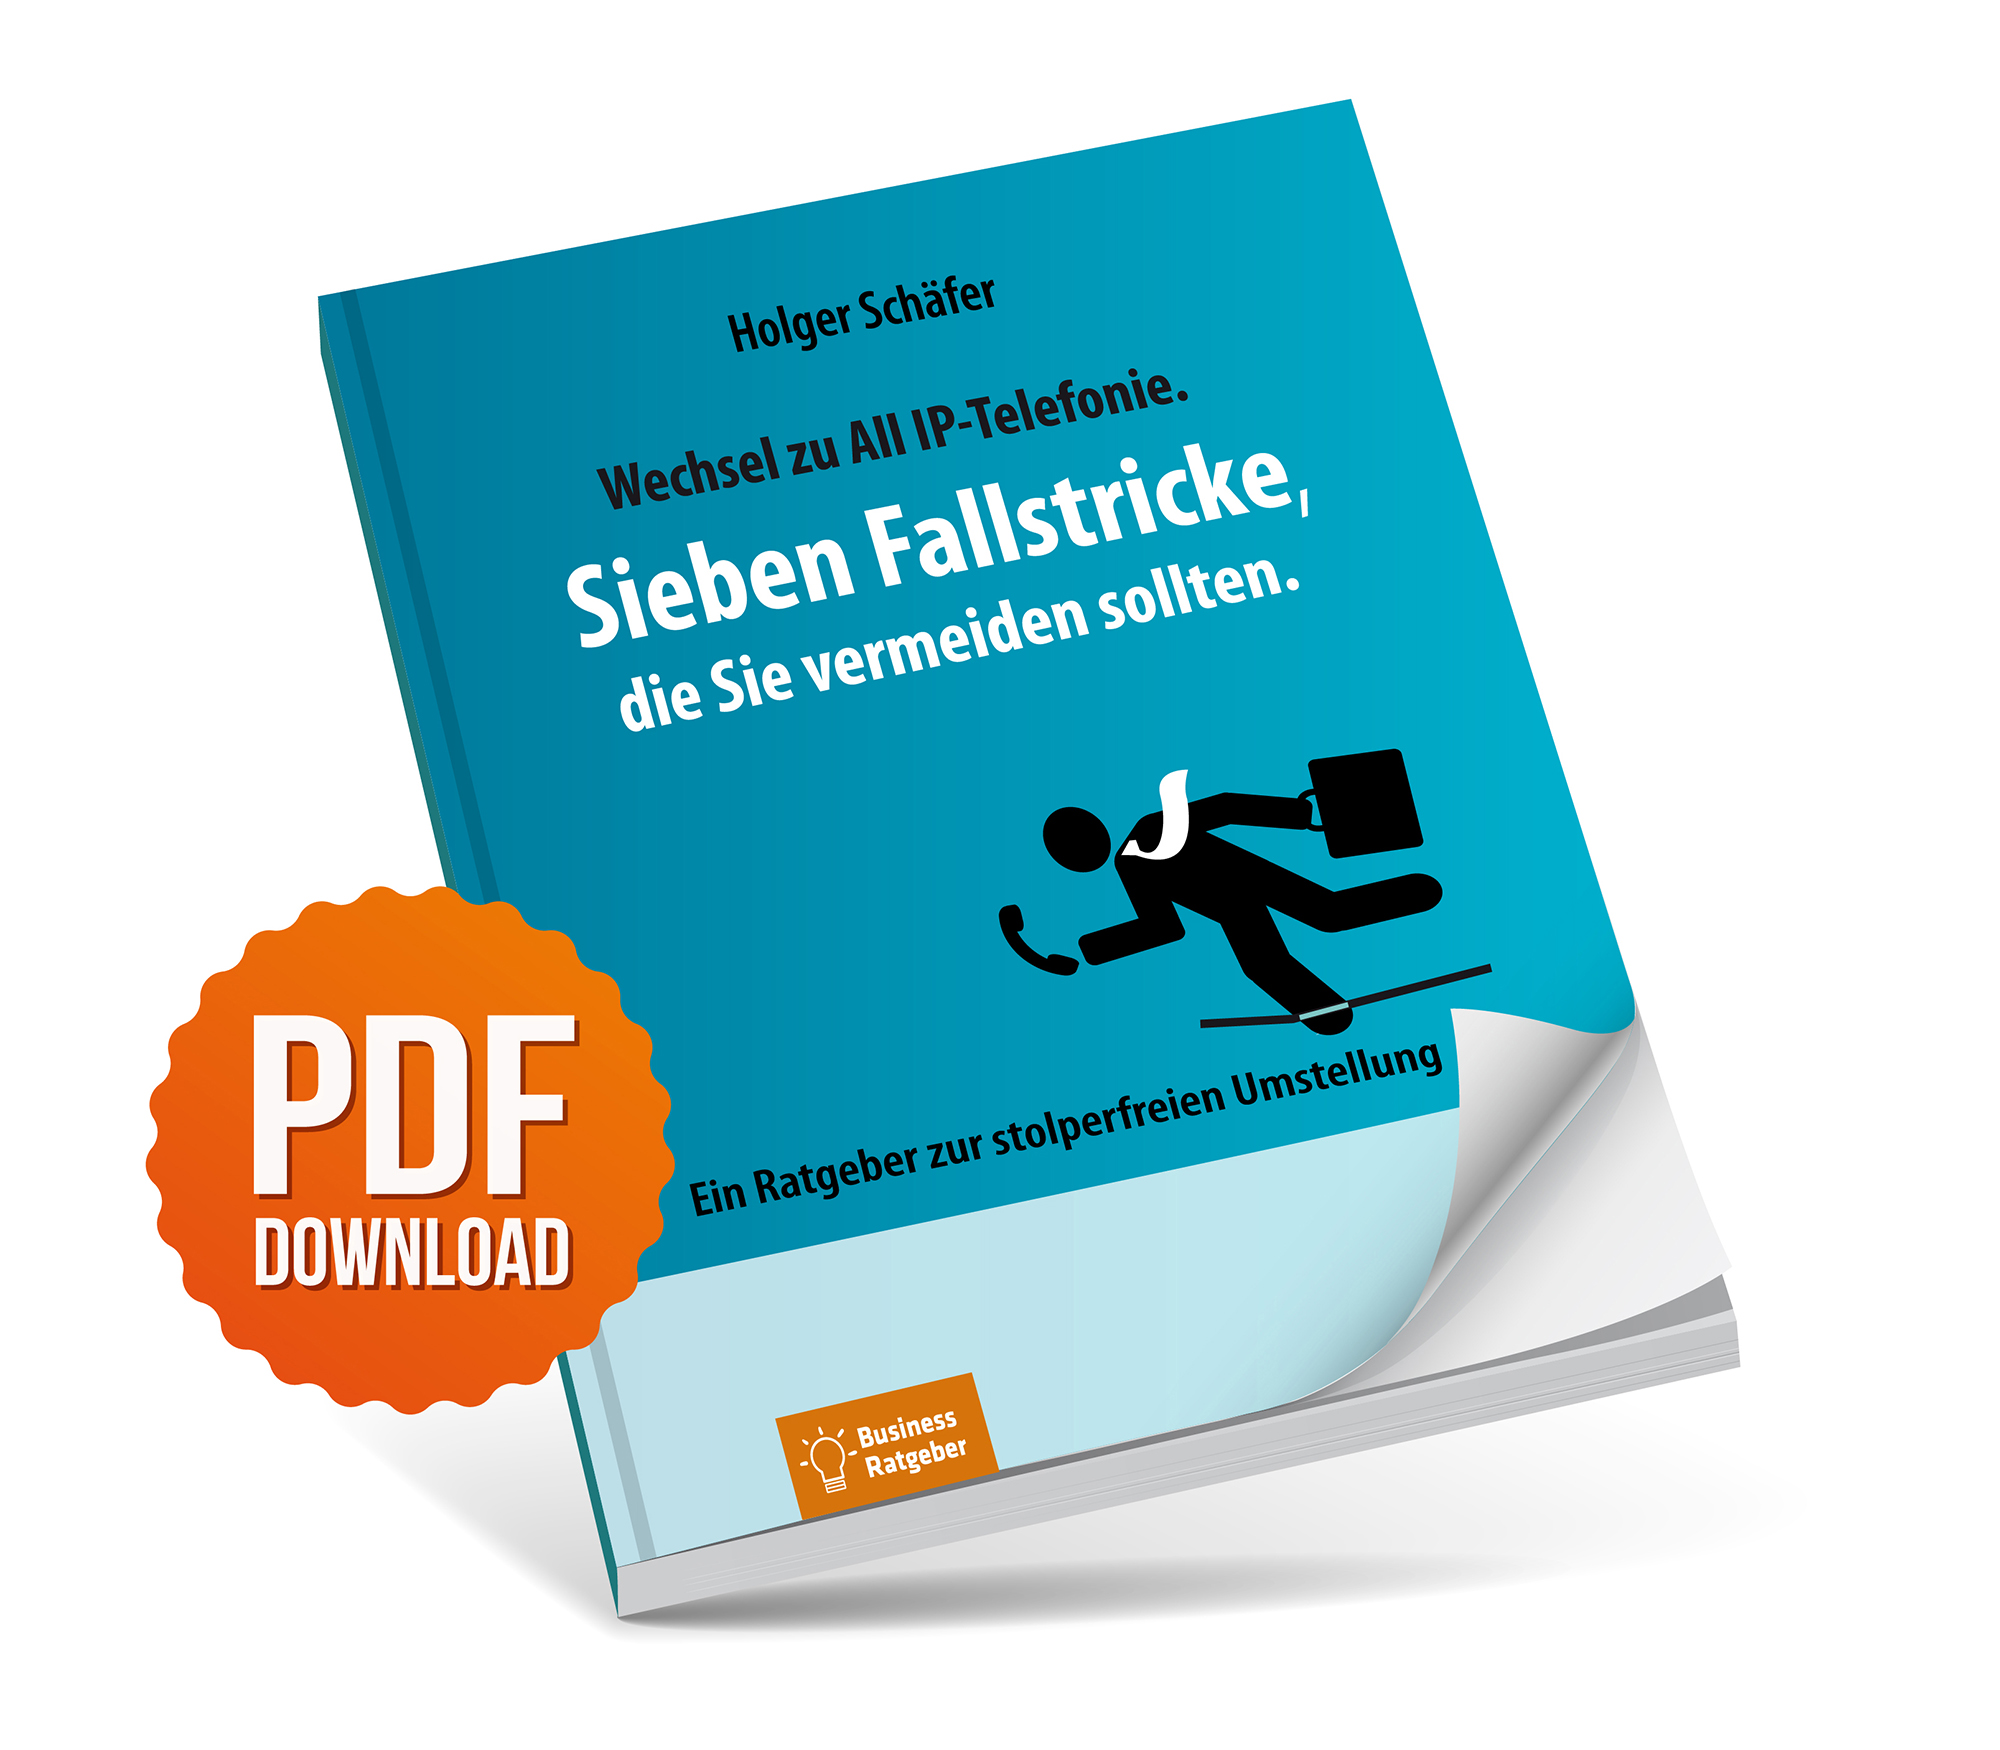 COM ADVICE verschenkt eBook zur neuen All-IP-Telefonie